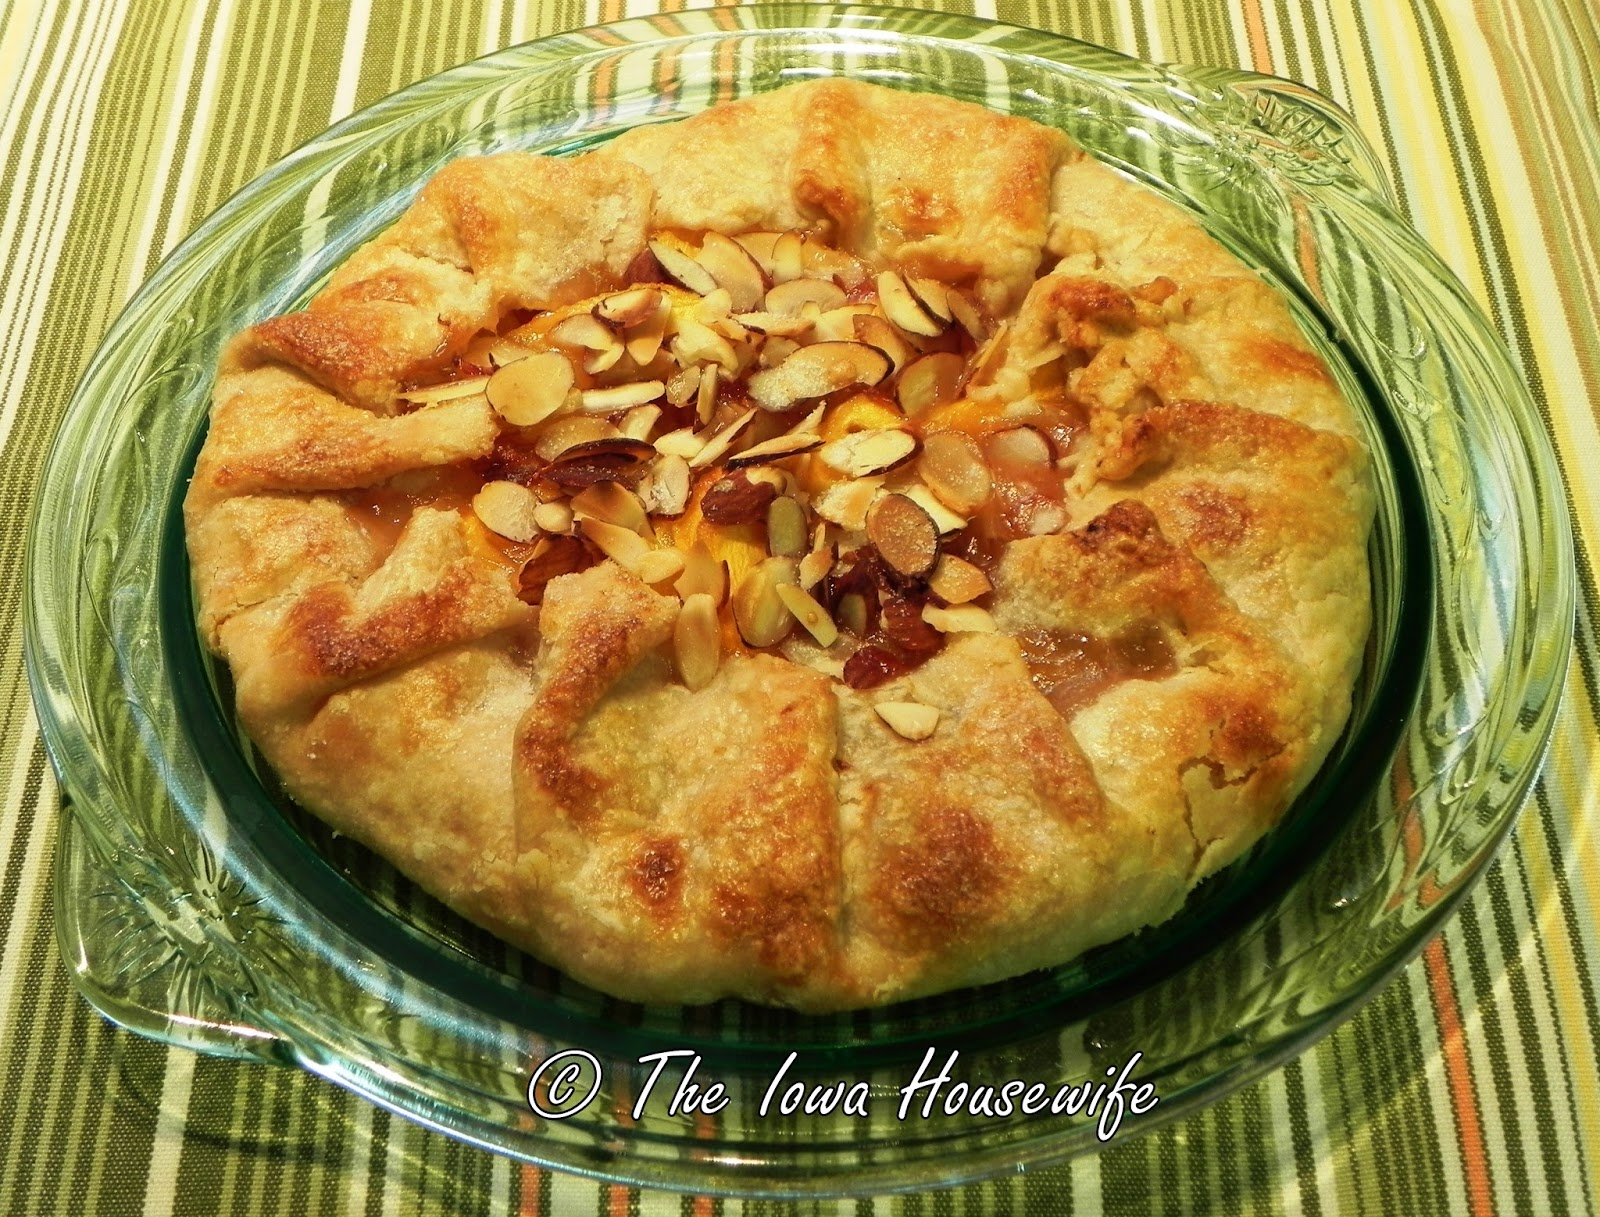 The Iowa Housewife Make It Yourself Lard Pie Crust